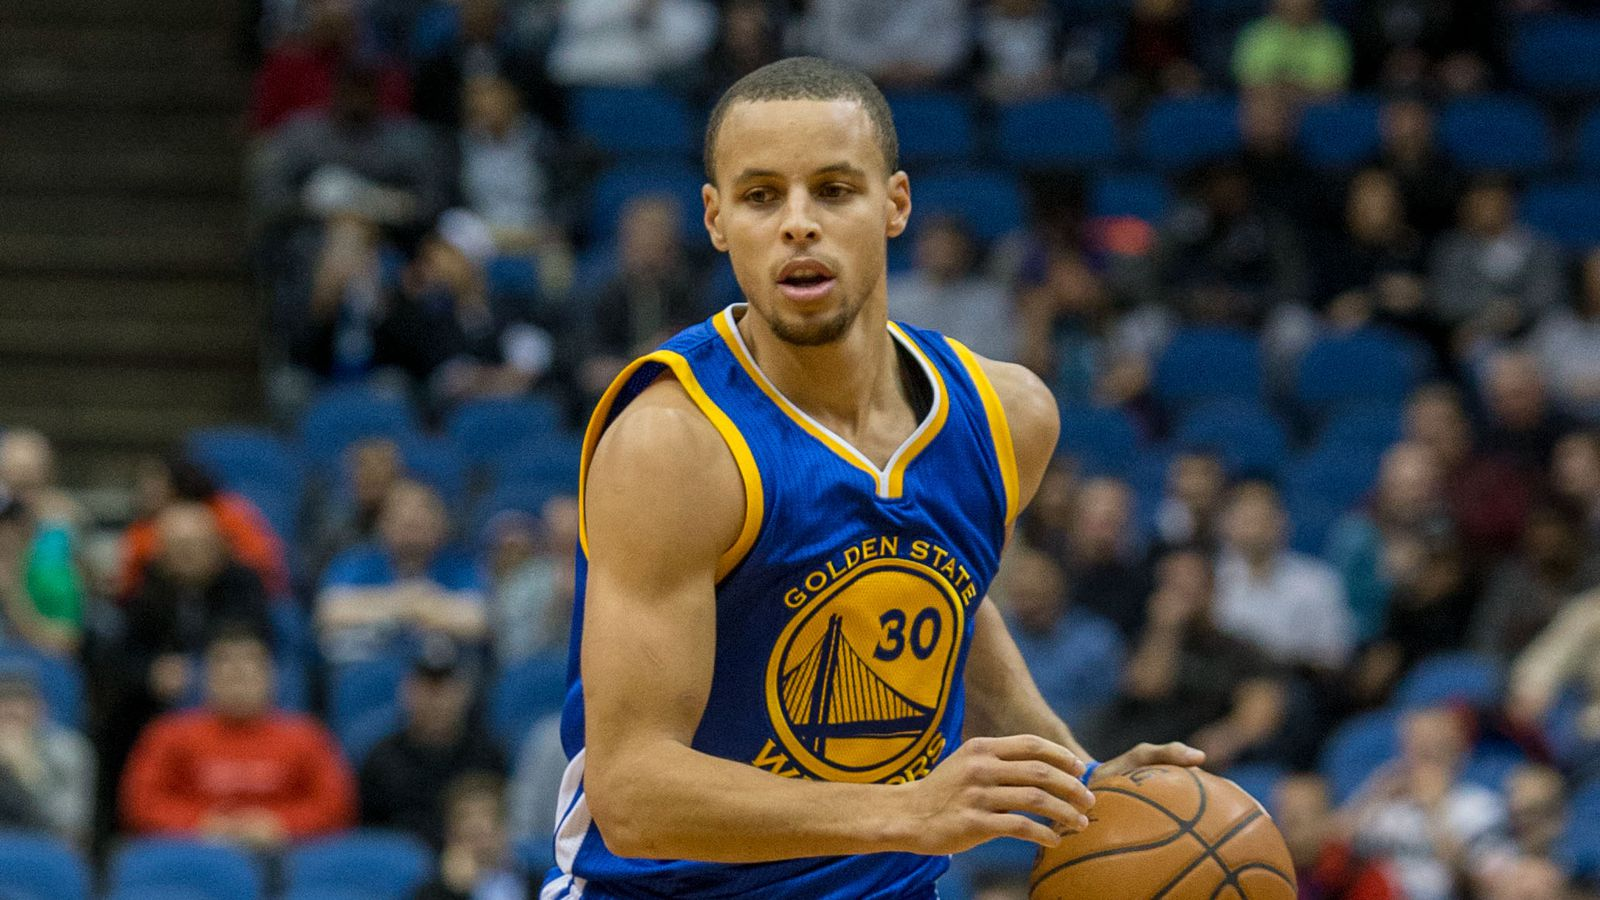 Toronto Raptors vs Golden State Warriors 1030 pm ET Wednesday ESPNWatchESPN is the most likely NBA Finals matchup but would it be the best Our